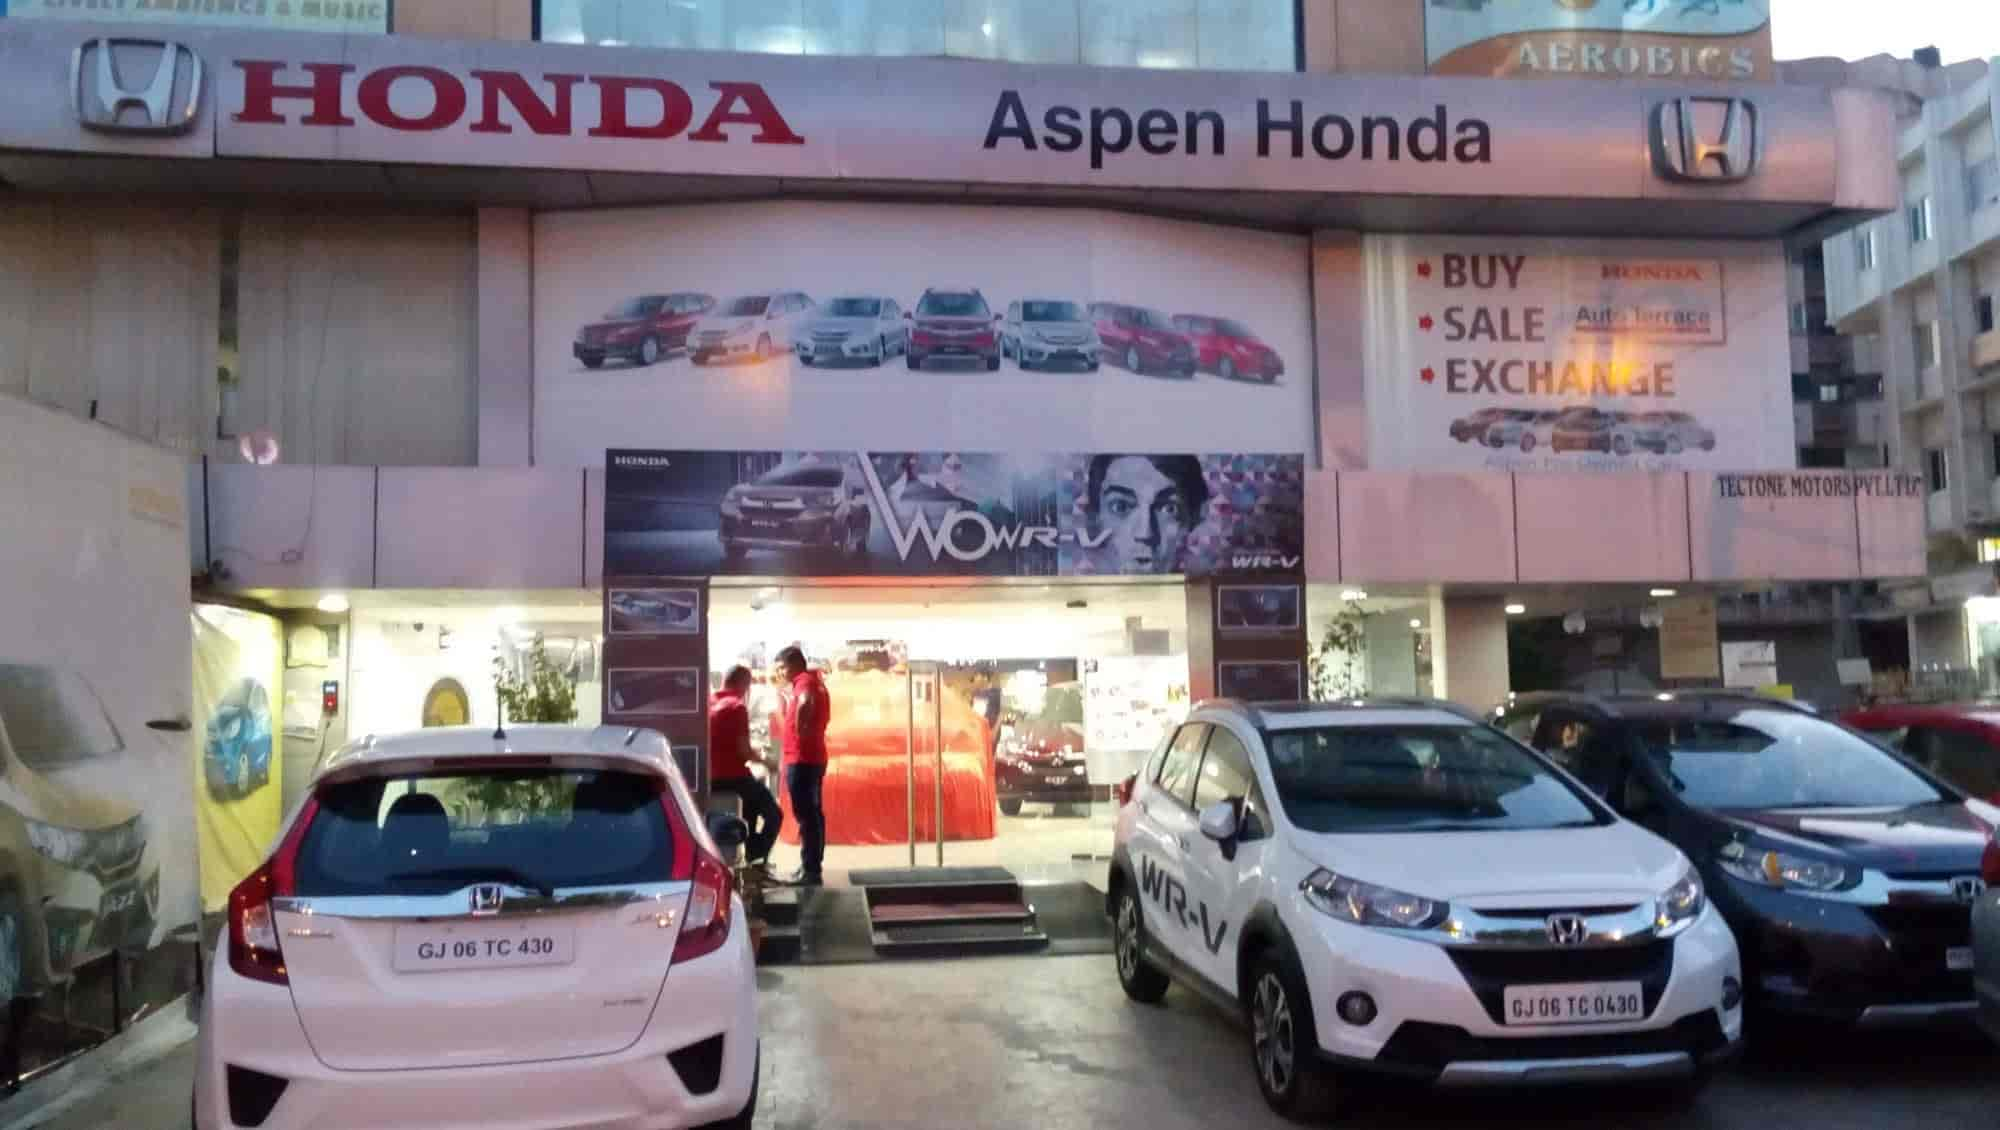 Aspen Honda Old Padra Road Car Dealers Honda In Vadodara Justdial